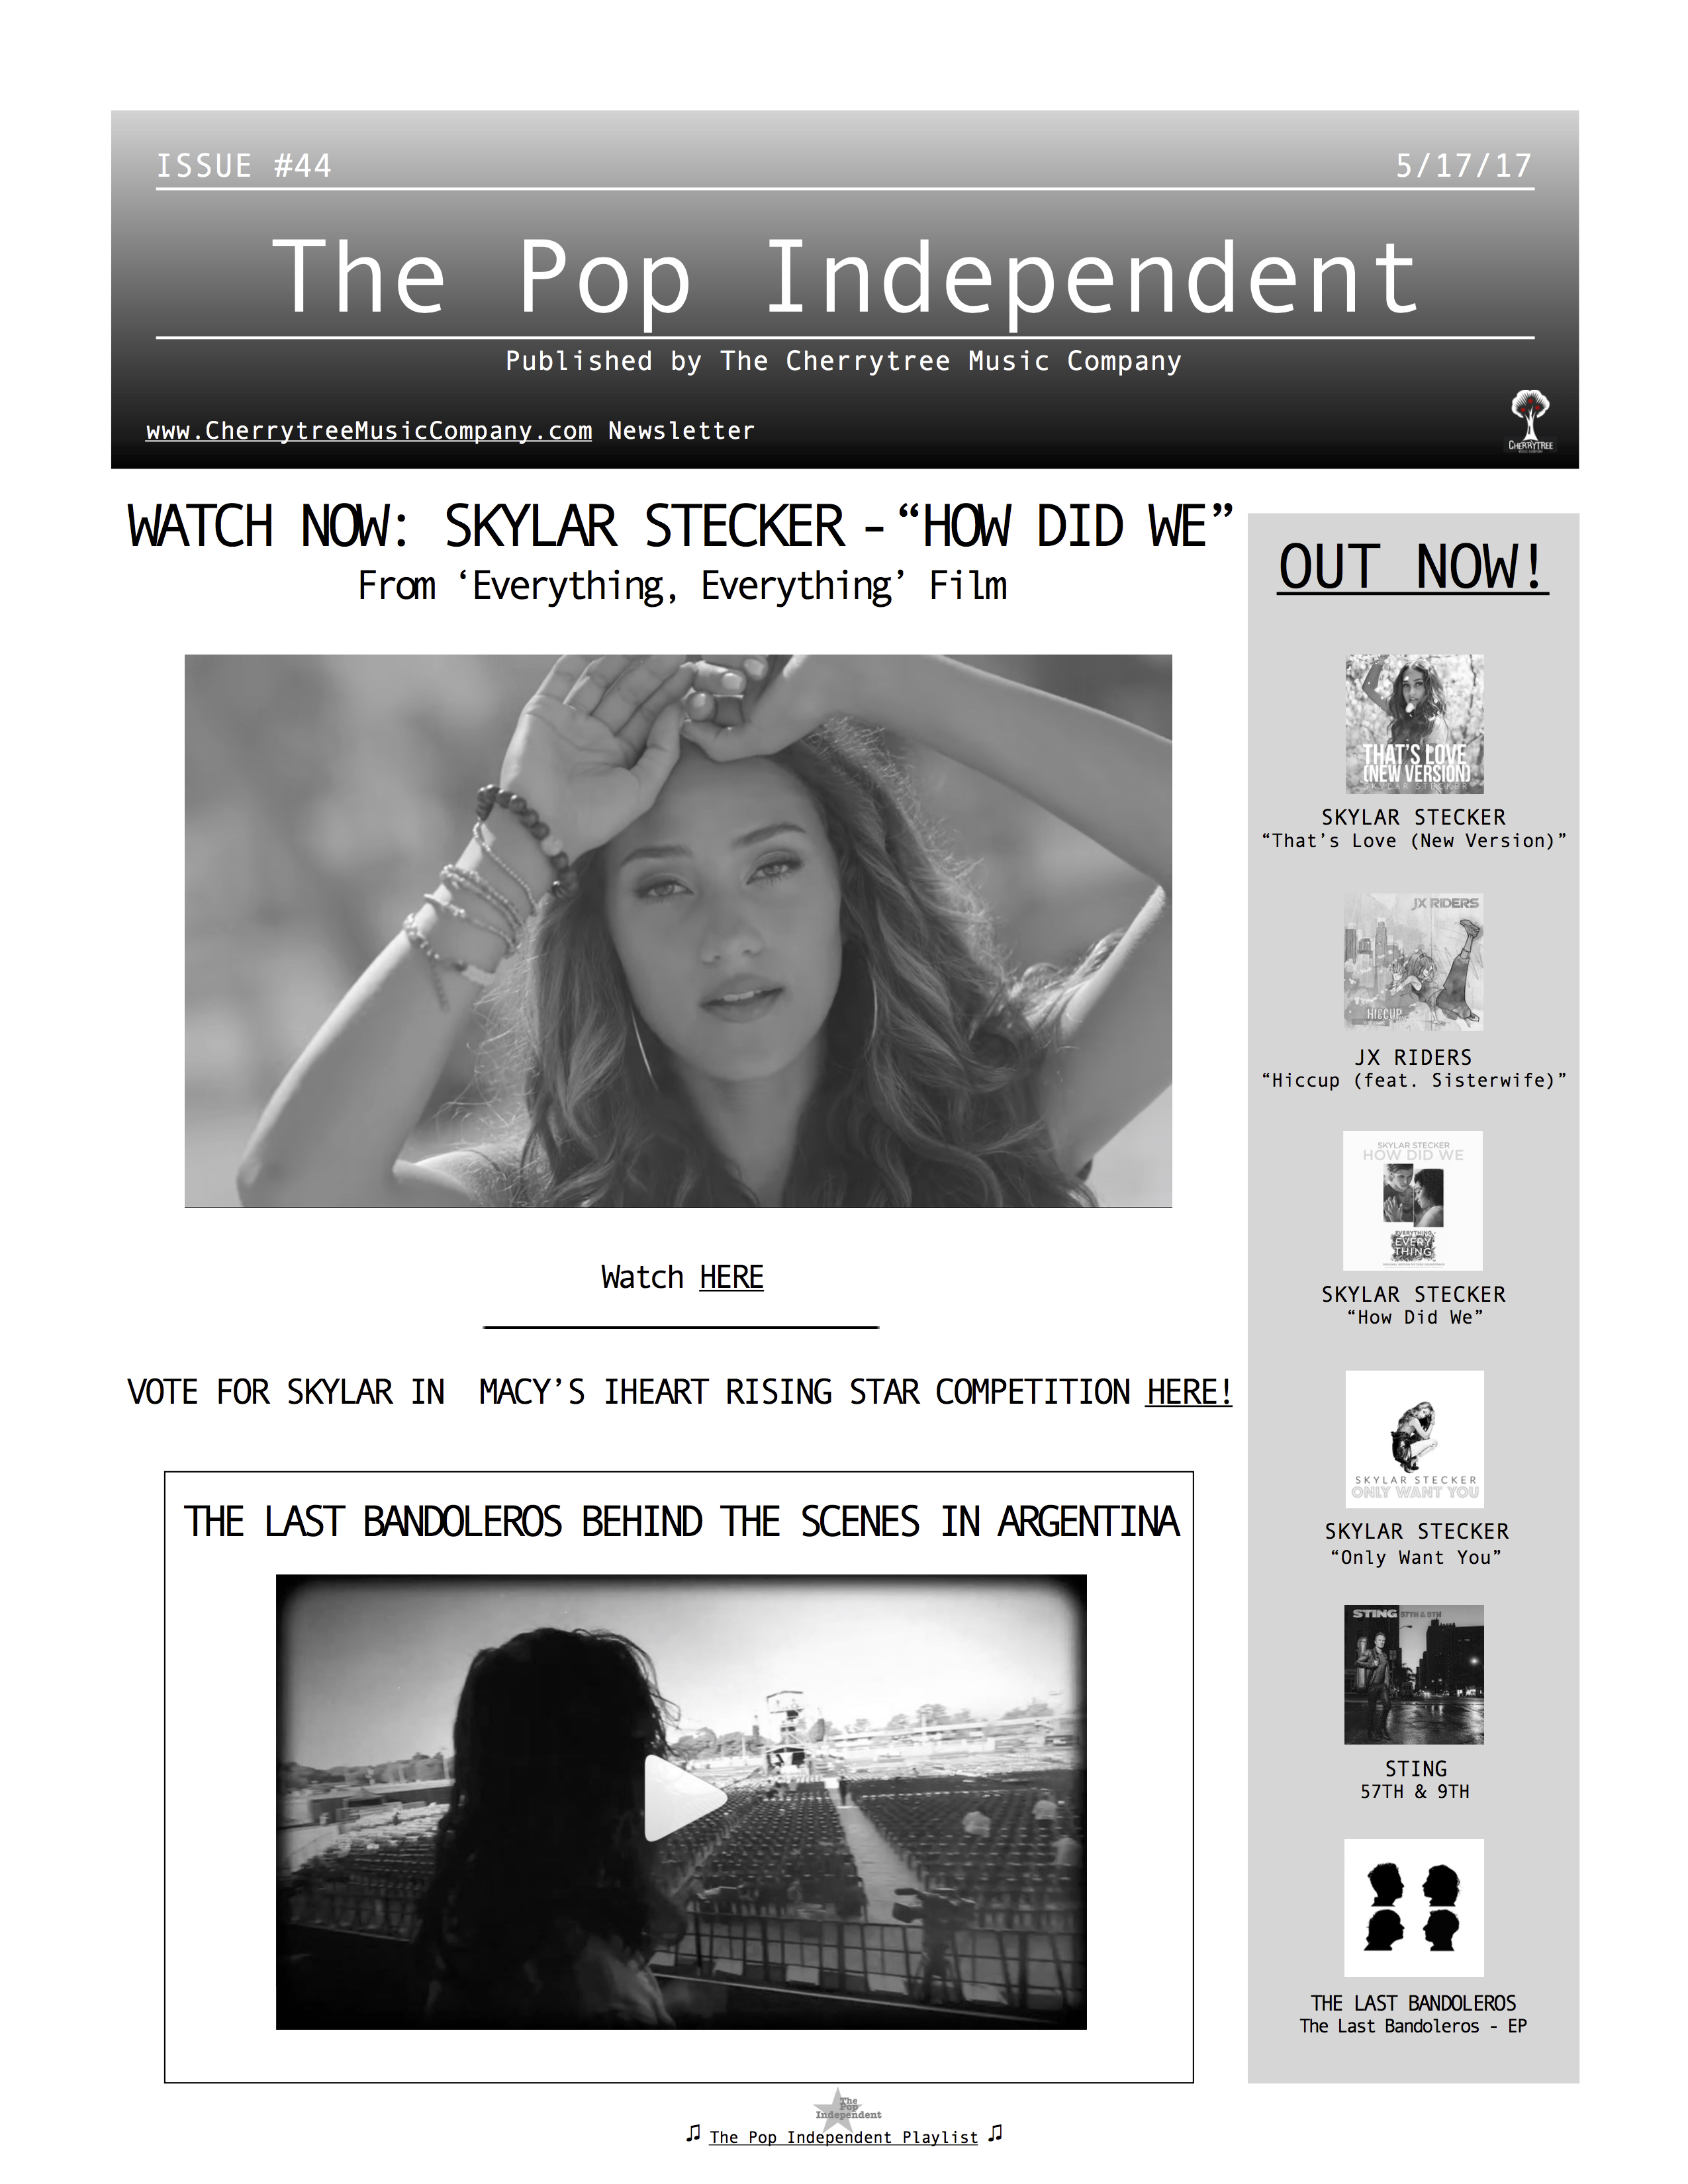 The Pop Independent, issue 44